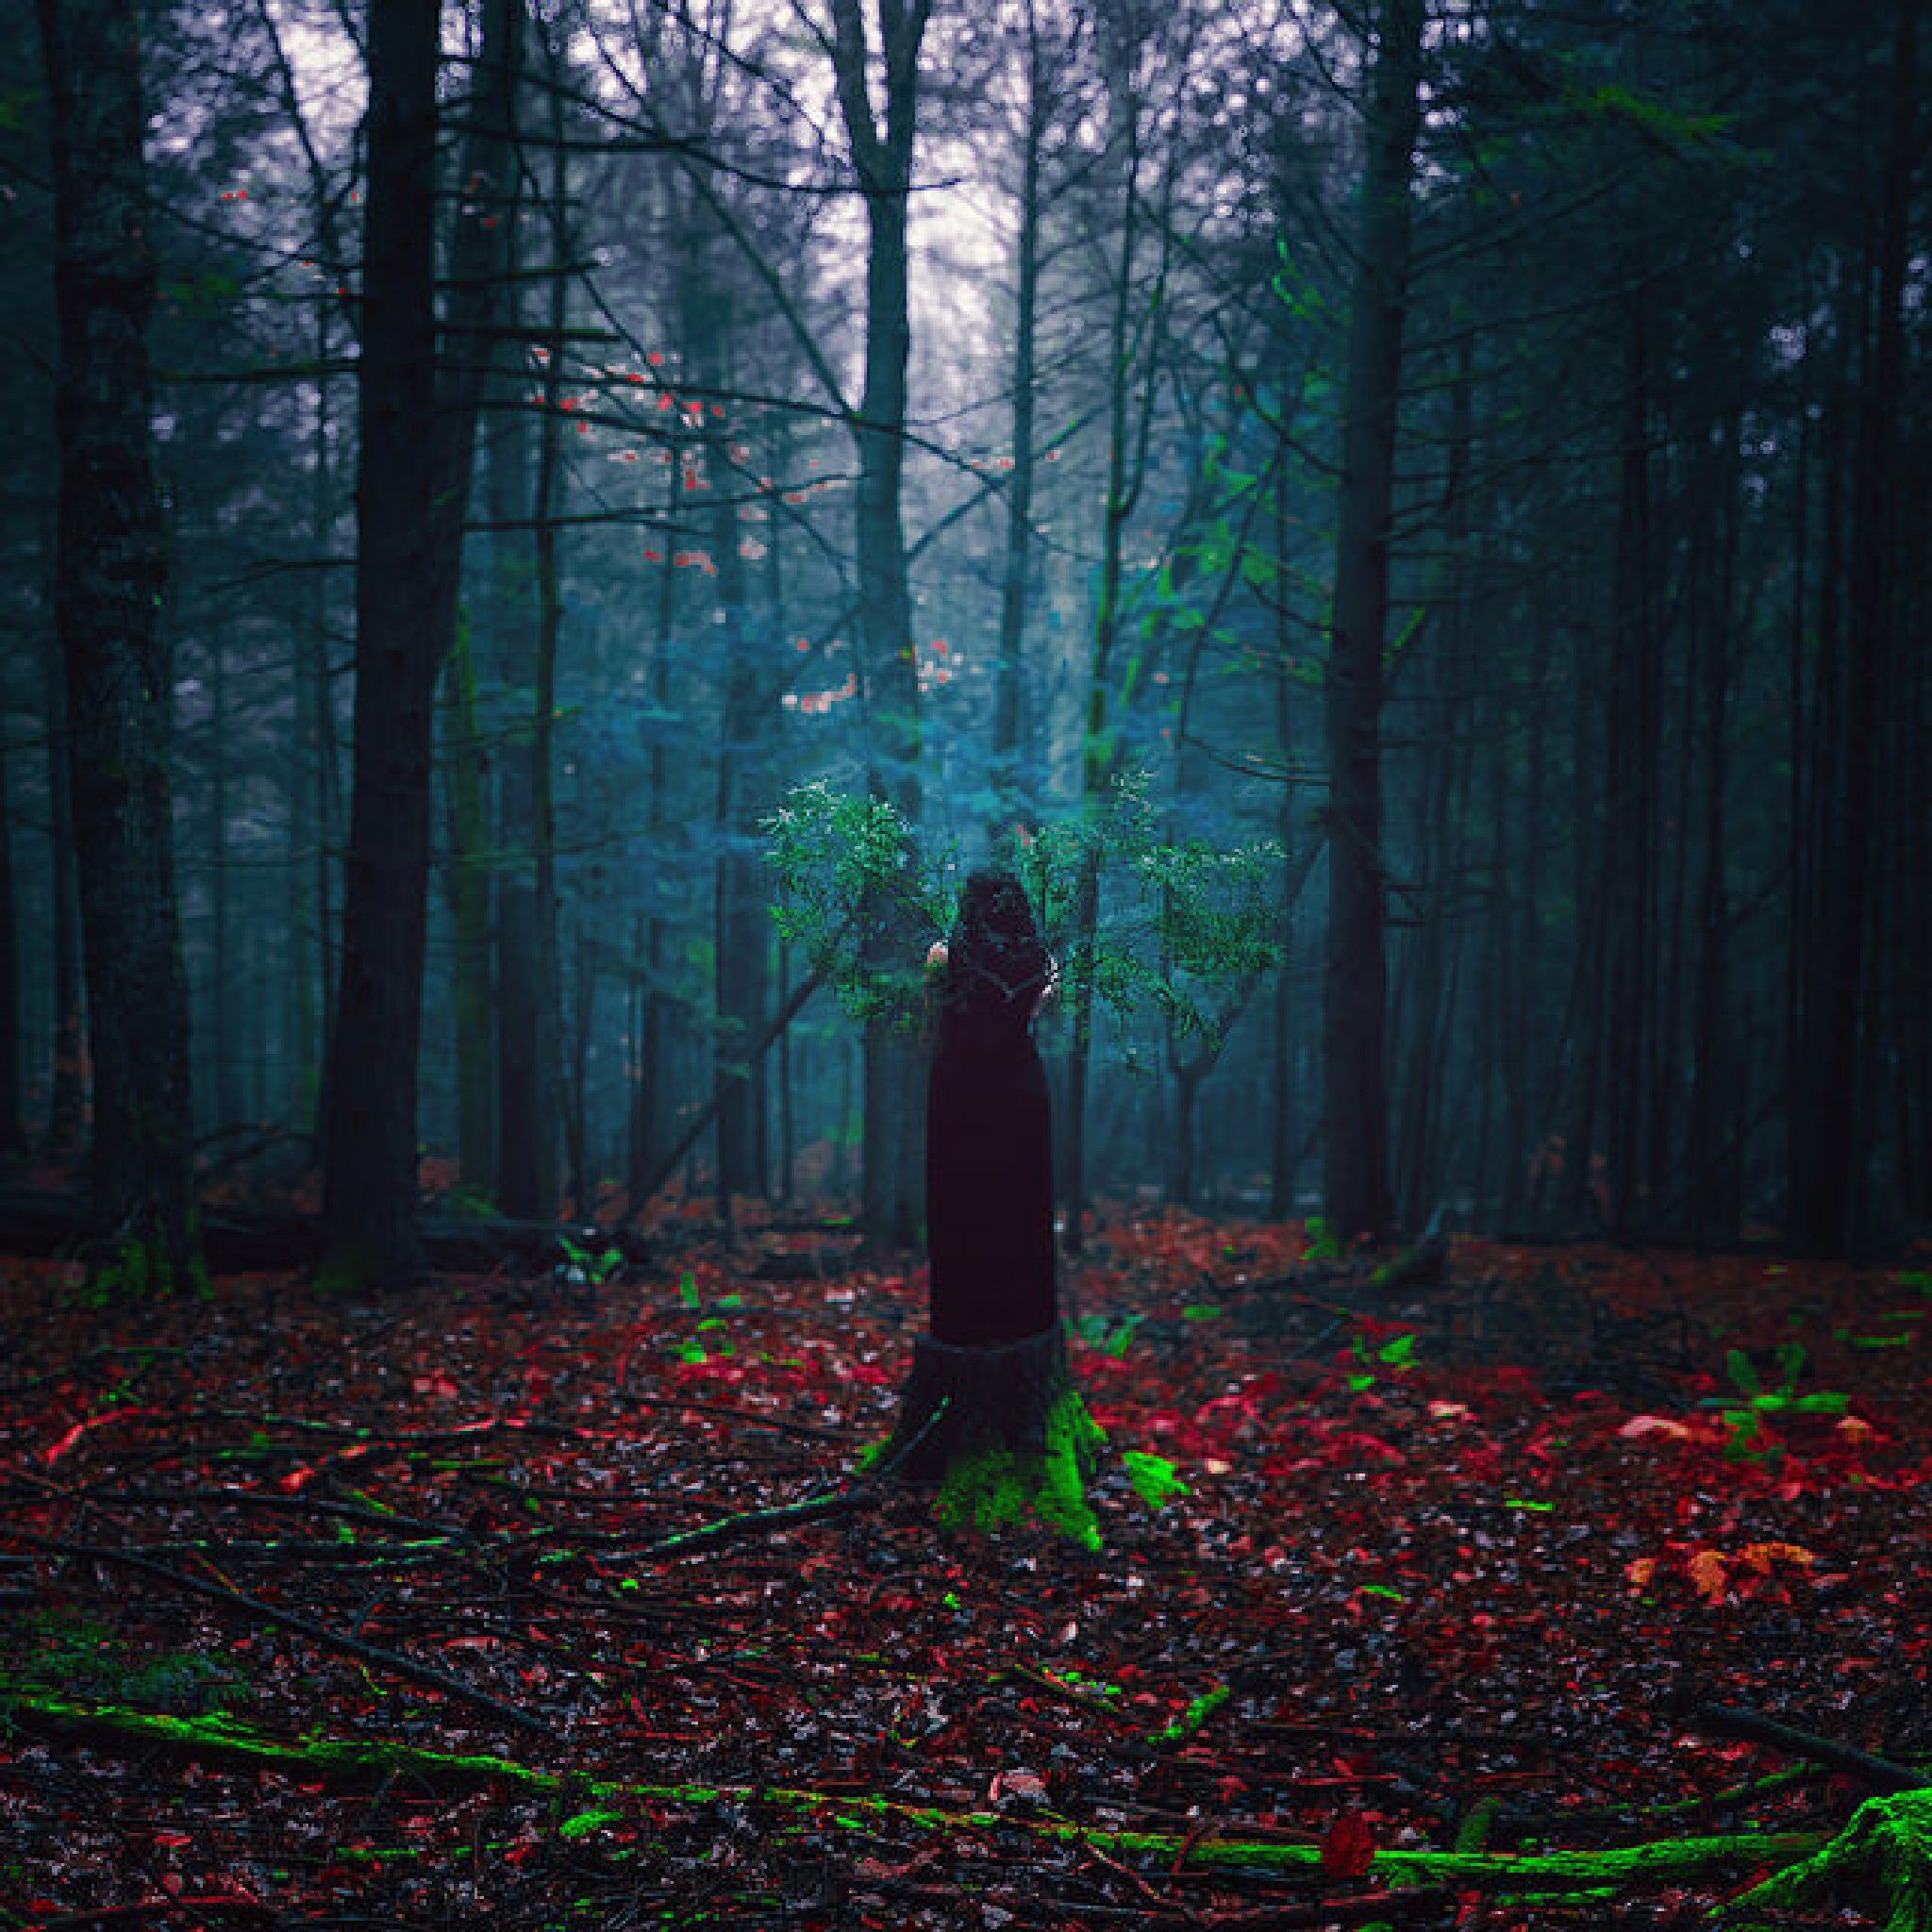 Mystical and truly creative photography by Sarah Ann Loreth - https://youpic.com/image/5393981 #YouPic #photography #fineart #inspiration